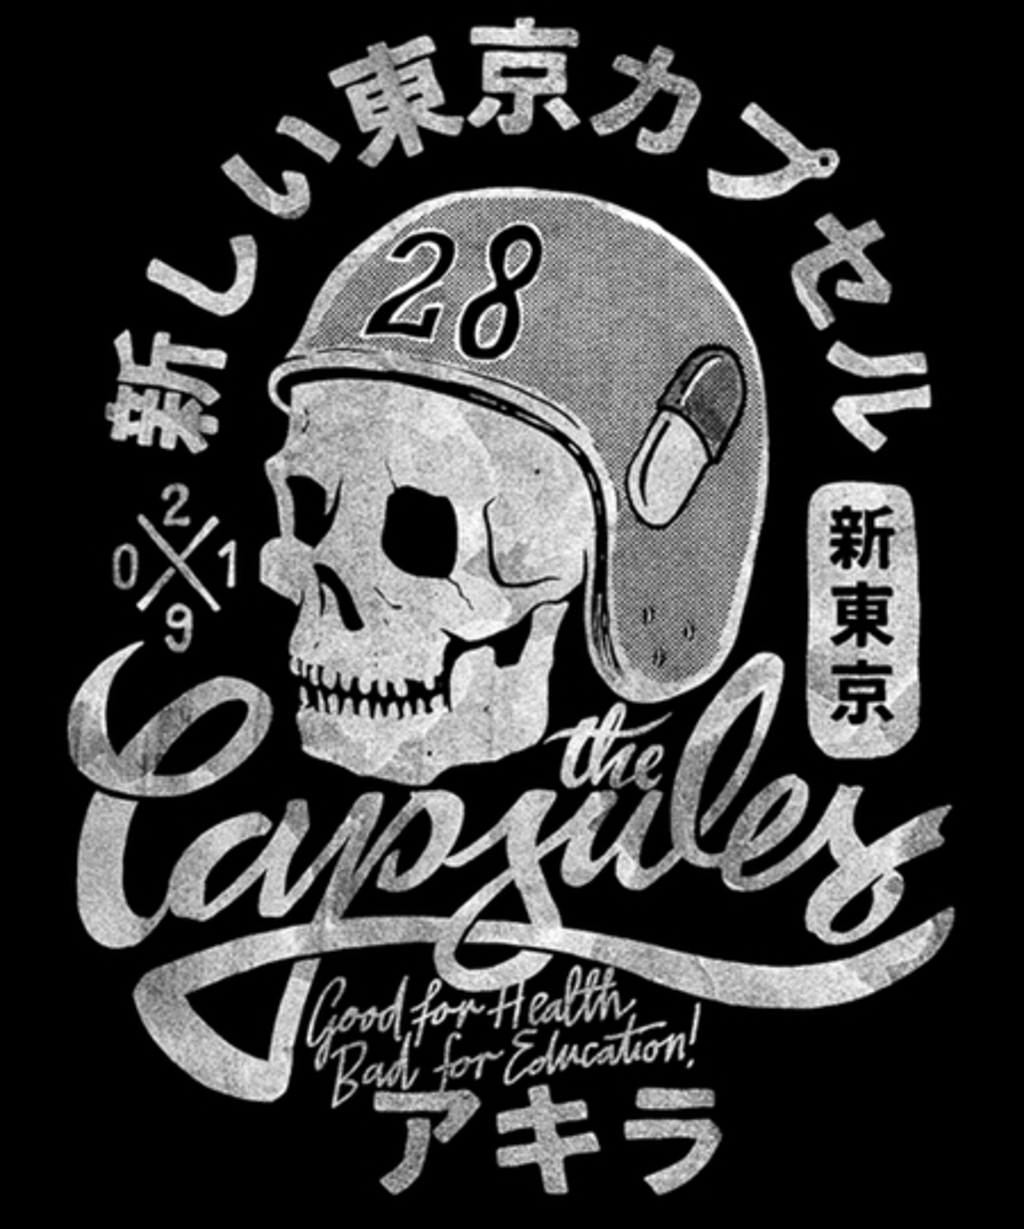 Qwertee: The Capsules